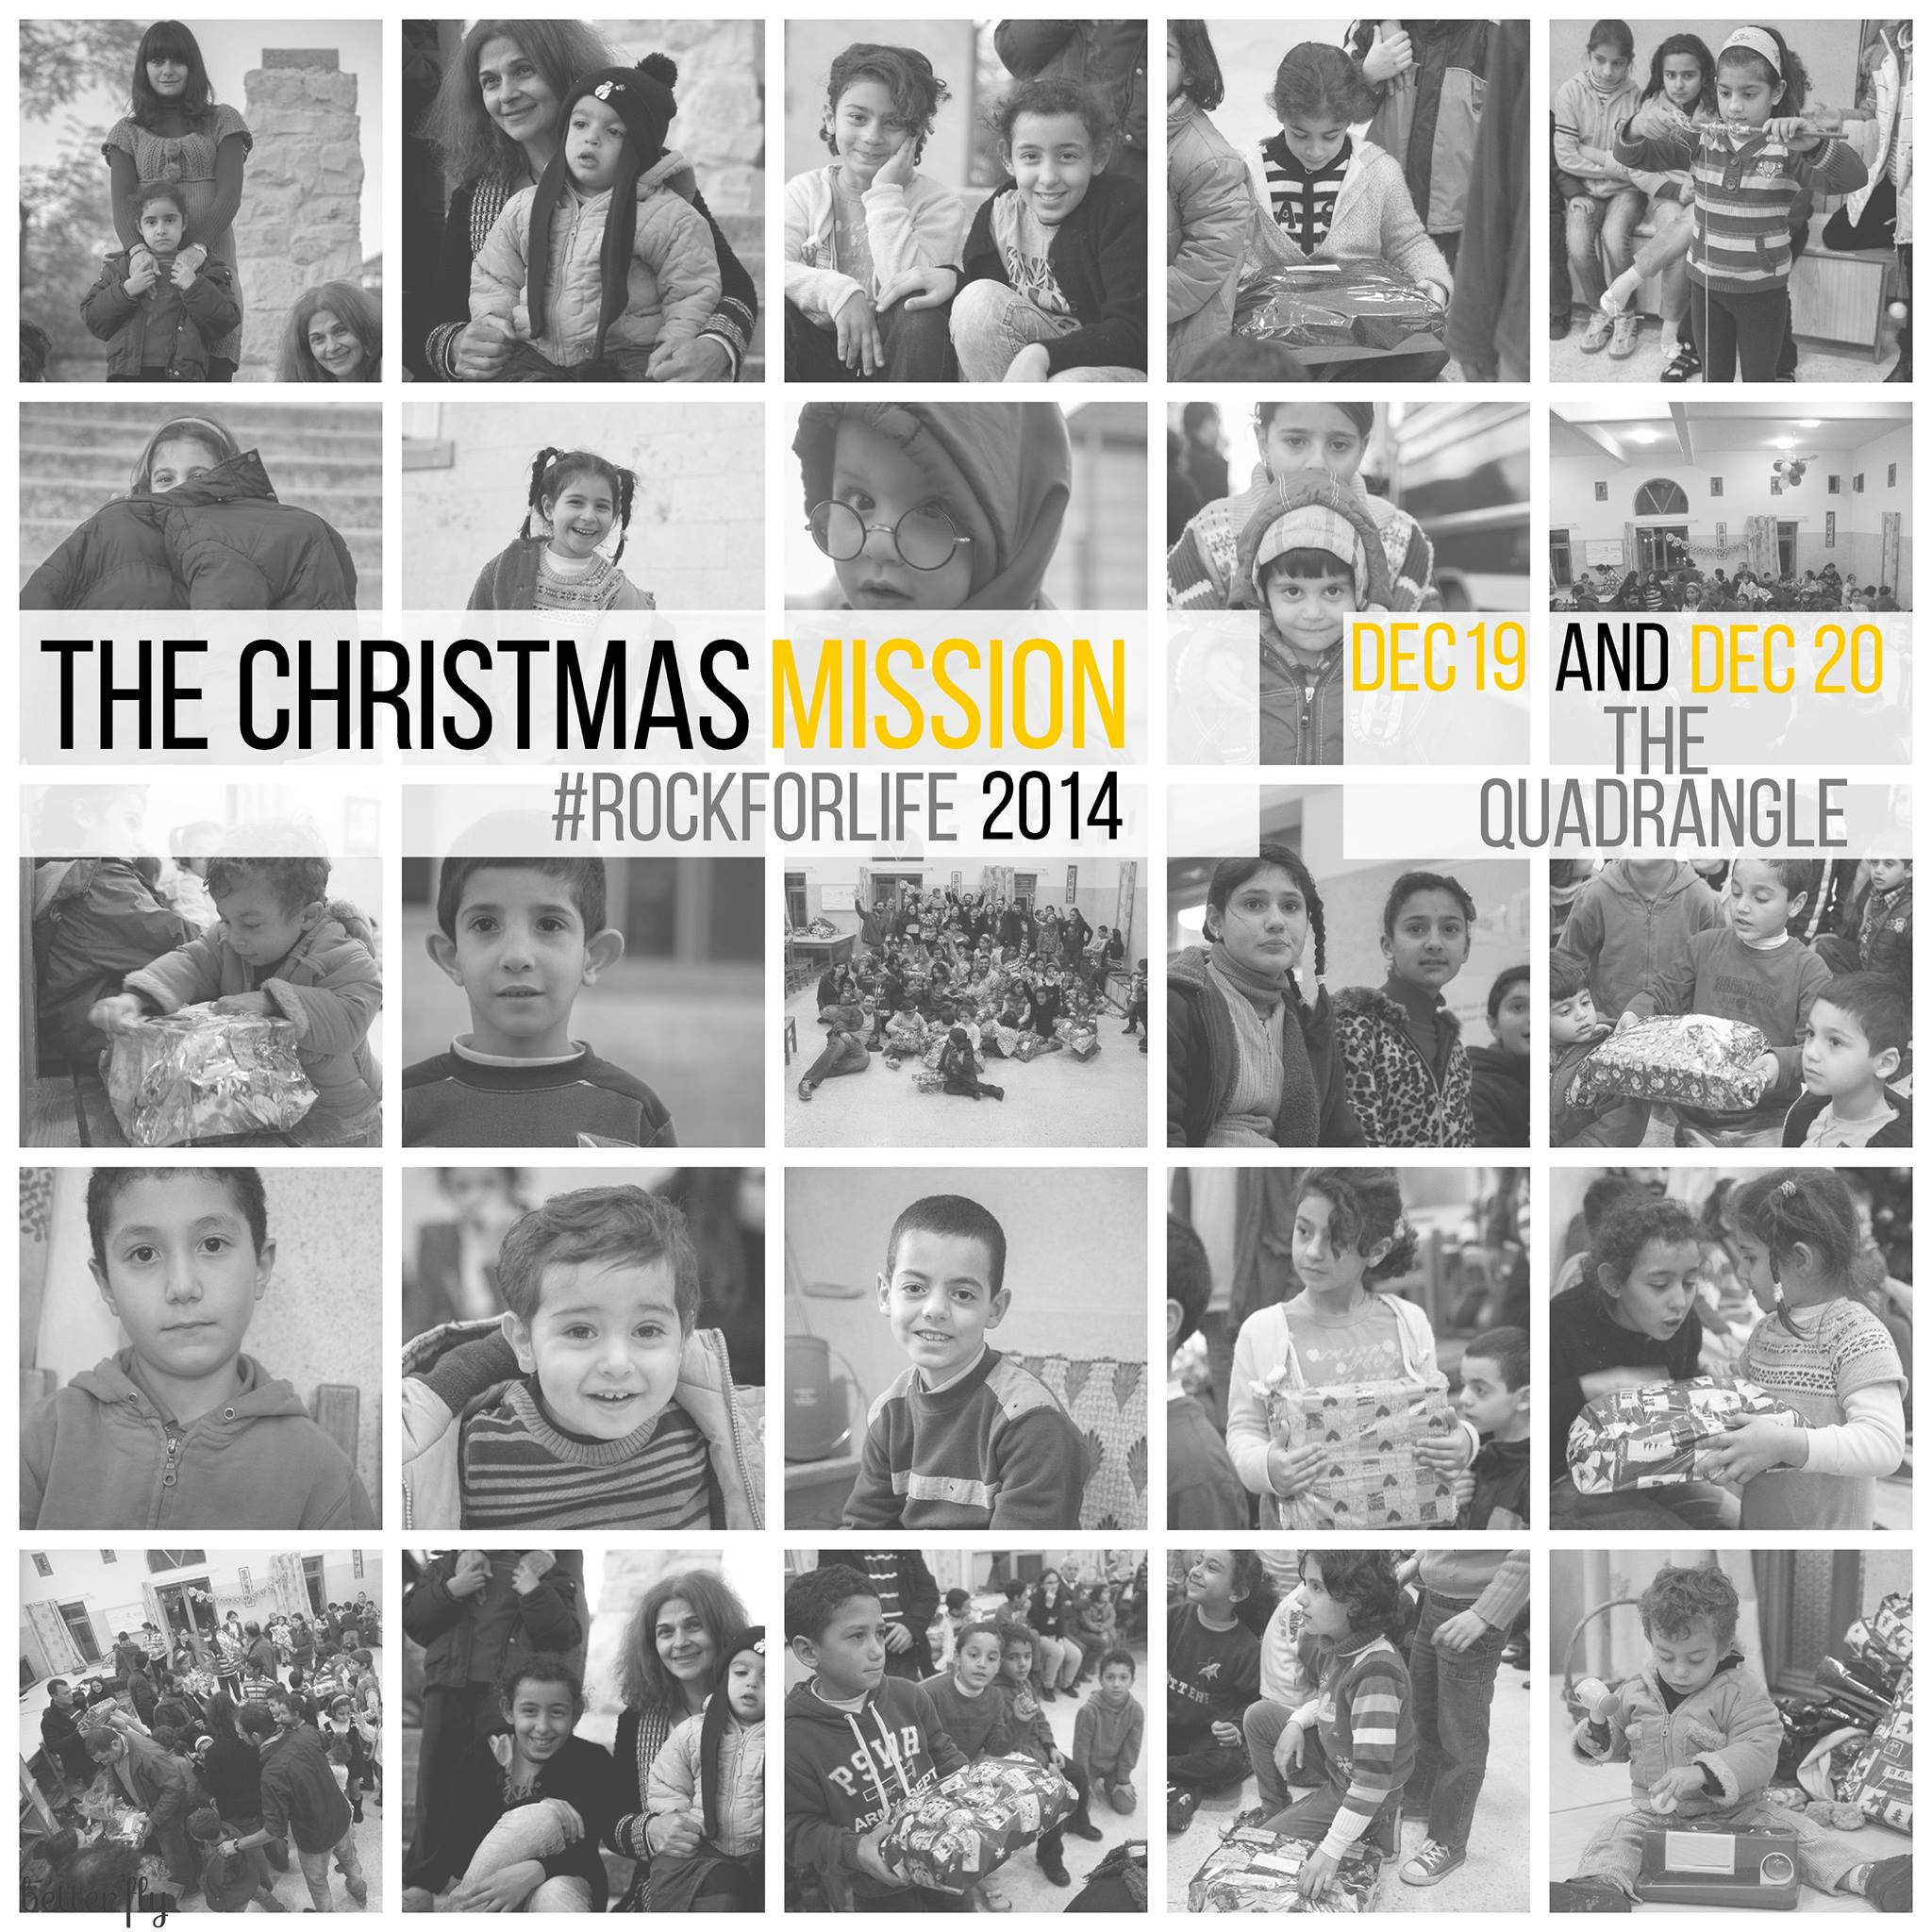 The Christmas Mission 2014